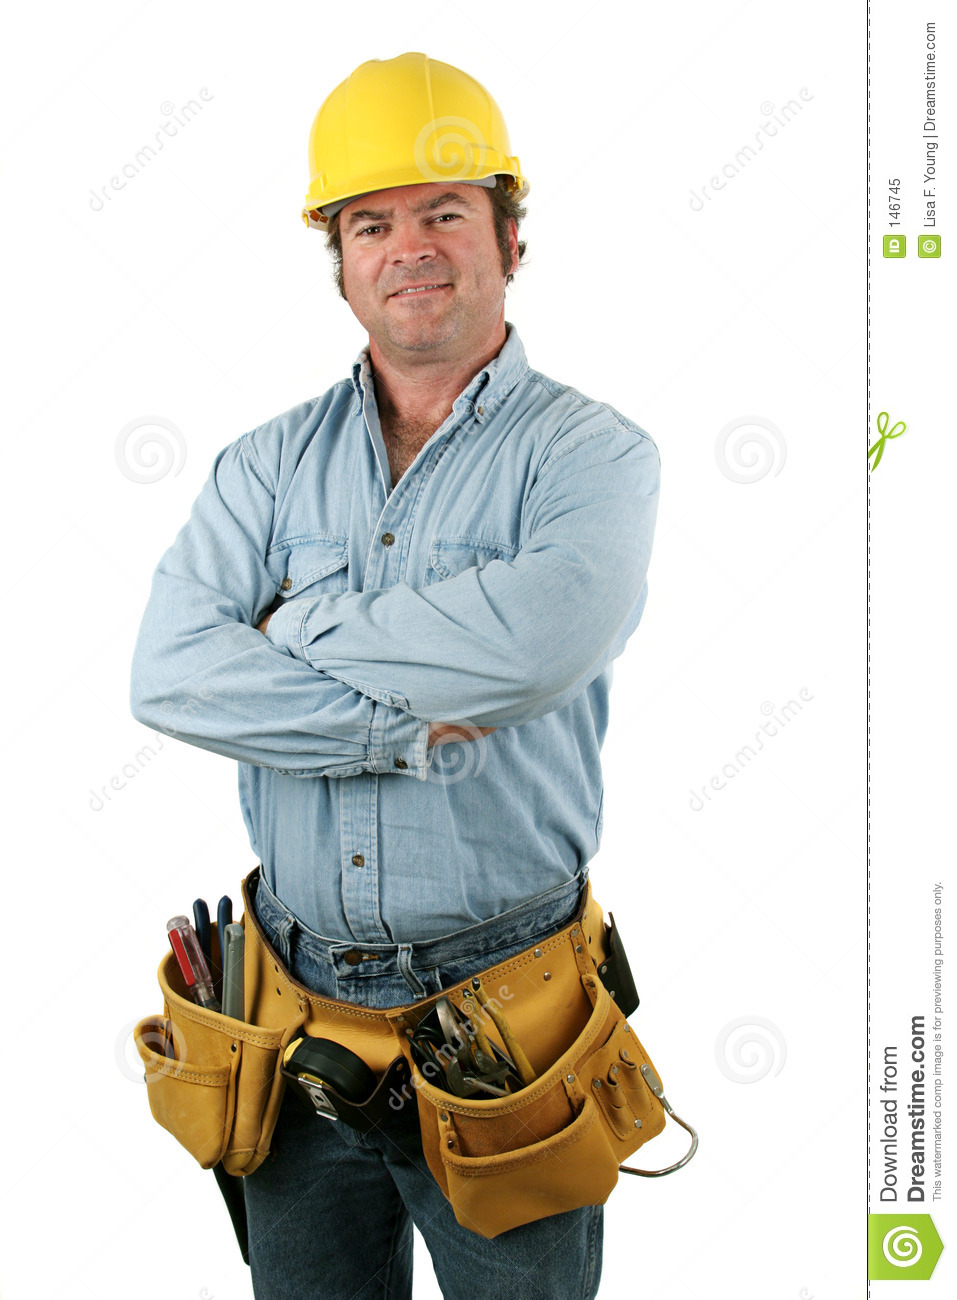 Tool Man - Friendly Royalty Free Stock Photo - Image: 146745